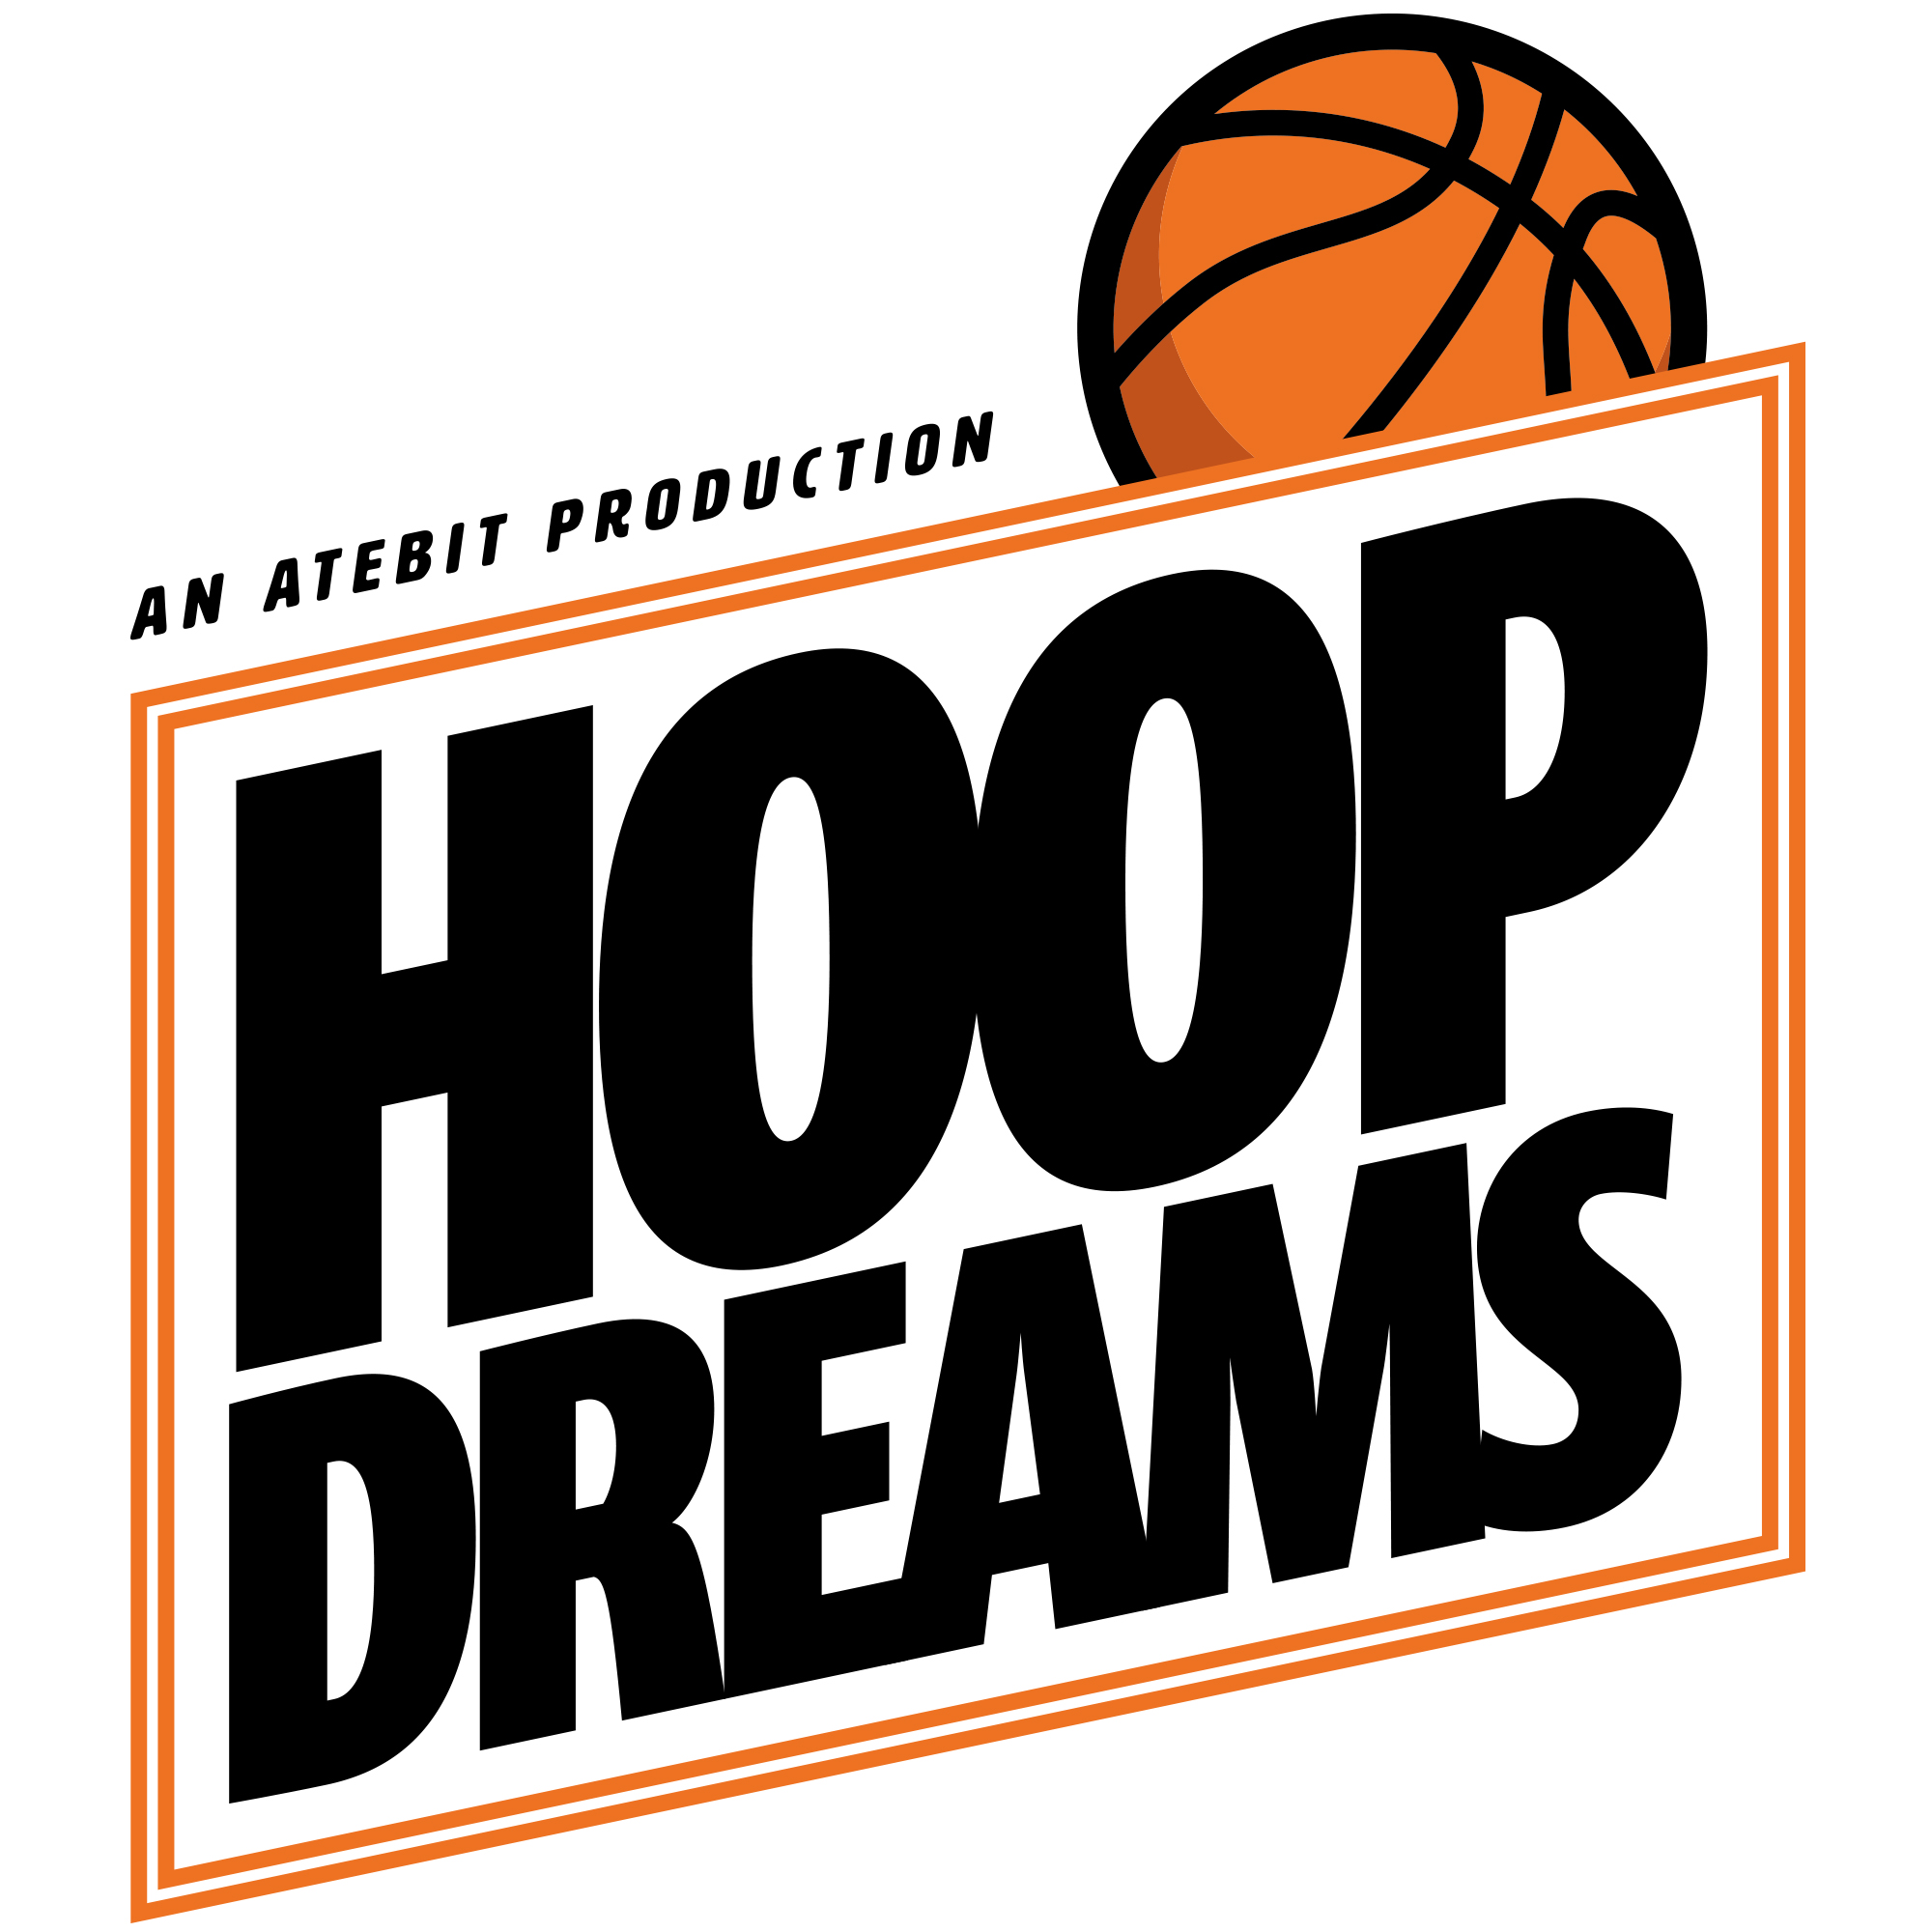 """HOOP DREAMS    """"We're talking bas-ket-ball! Join Matt Tilby, Brendan White and Jono Pech every fortnight as they take a light-hearted look at everything basketball, drilling hot takes from all over the podcast court. From player analysis, all the latest NBA news and general hoops culture, there's something for everyone on Hoop Dreams."""